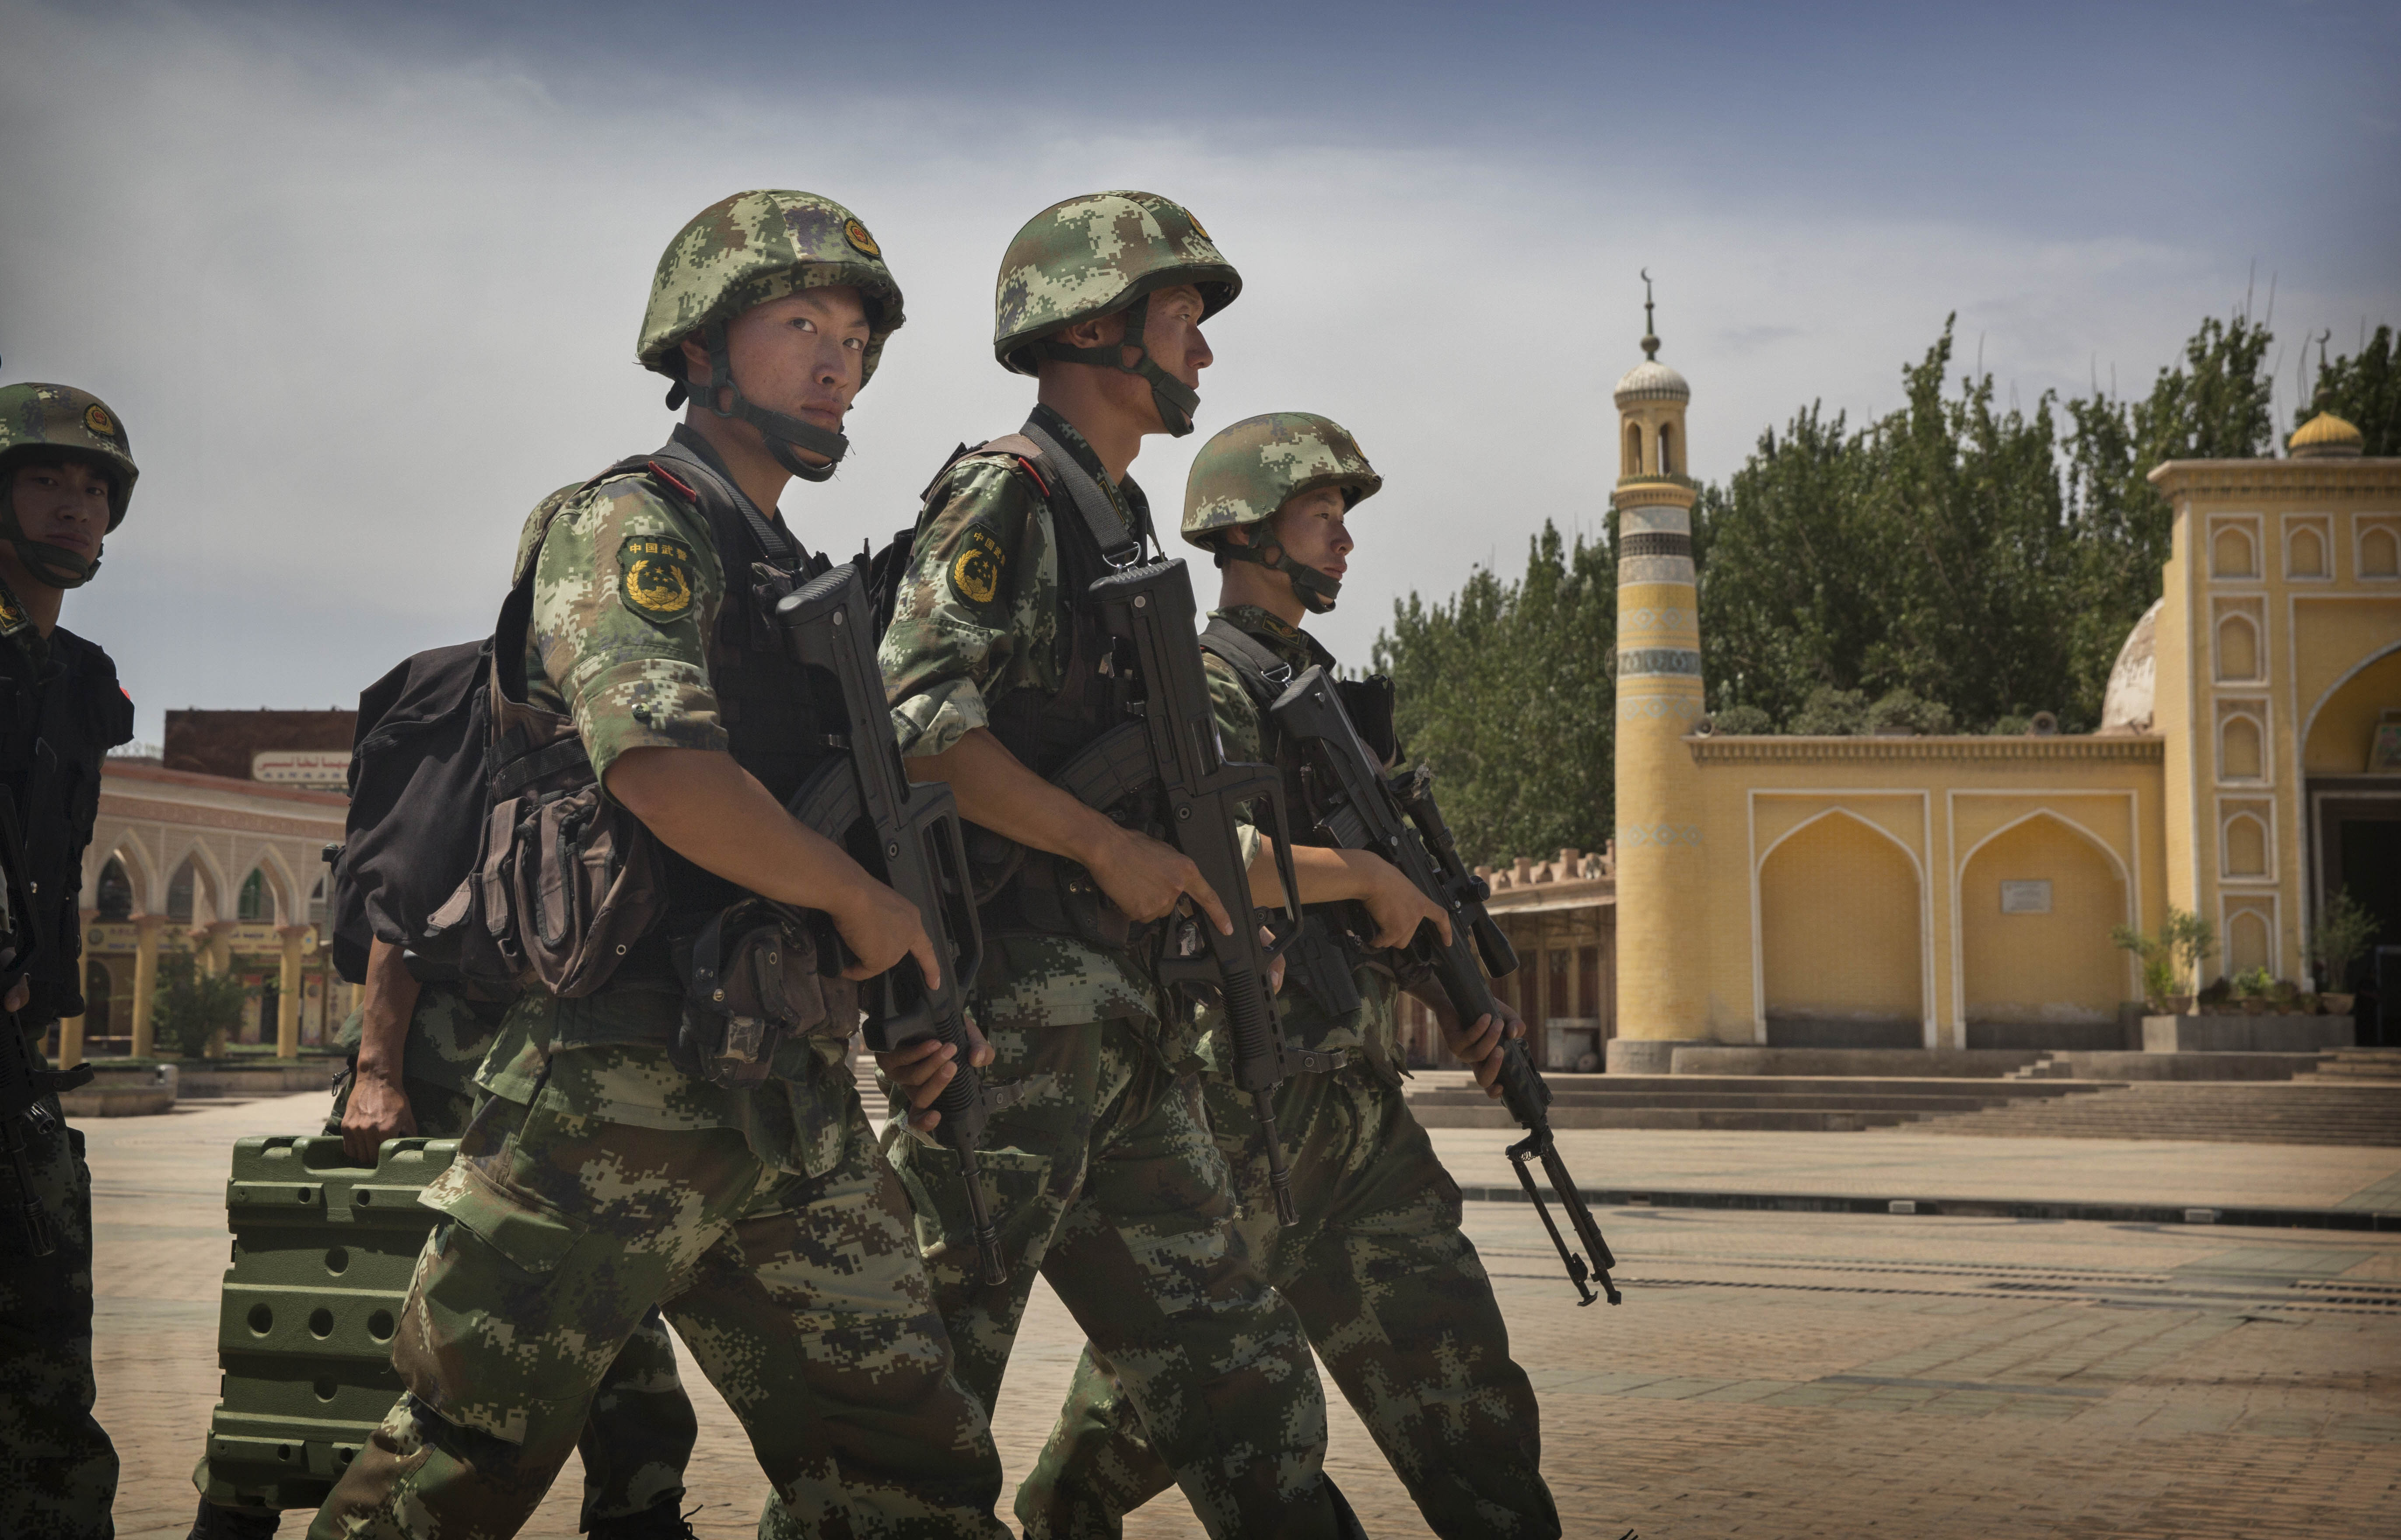 Chinese soldiers march in front of the Id Kah Mosque, China's largest, in Kashgar, on July 31, 2014. China has increased security in many parts of restive Xinjiang  following some of the worst violence in months